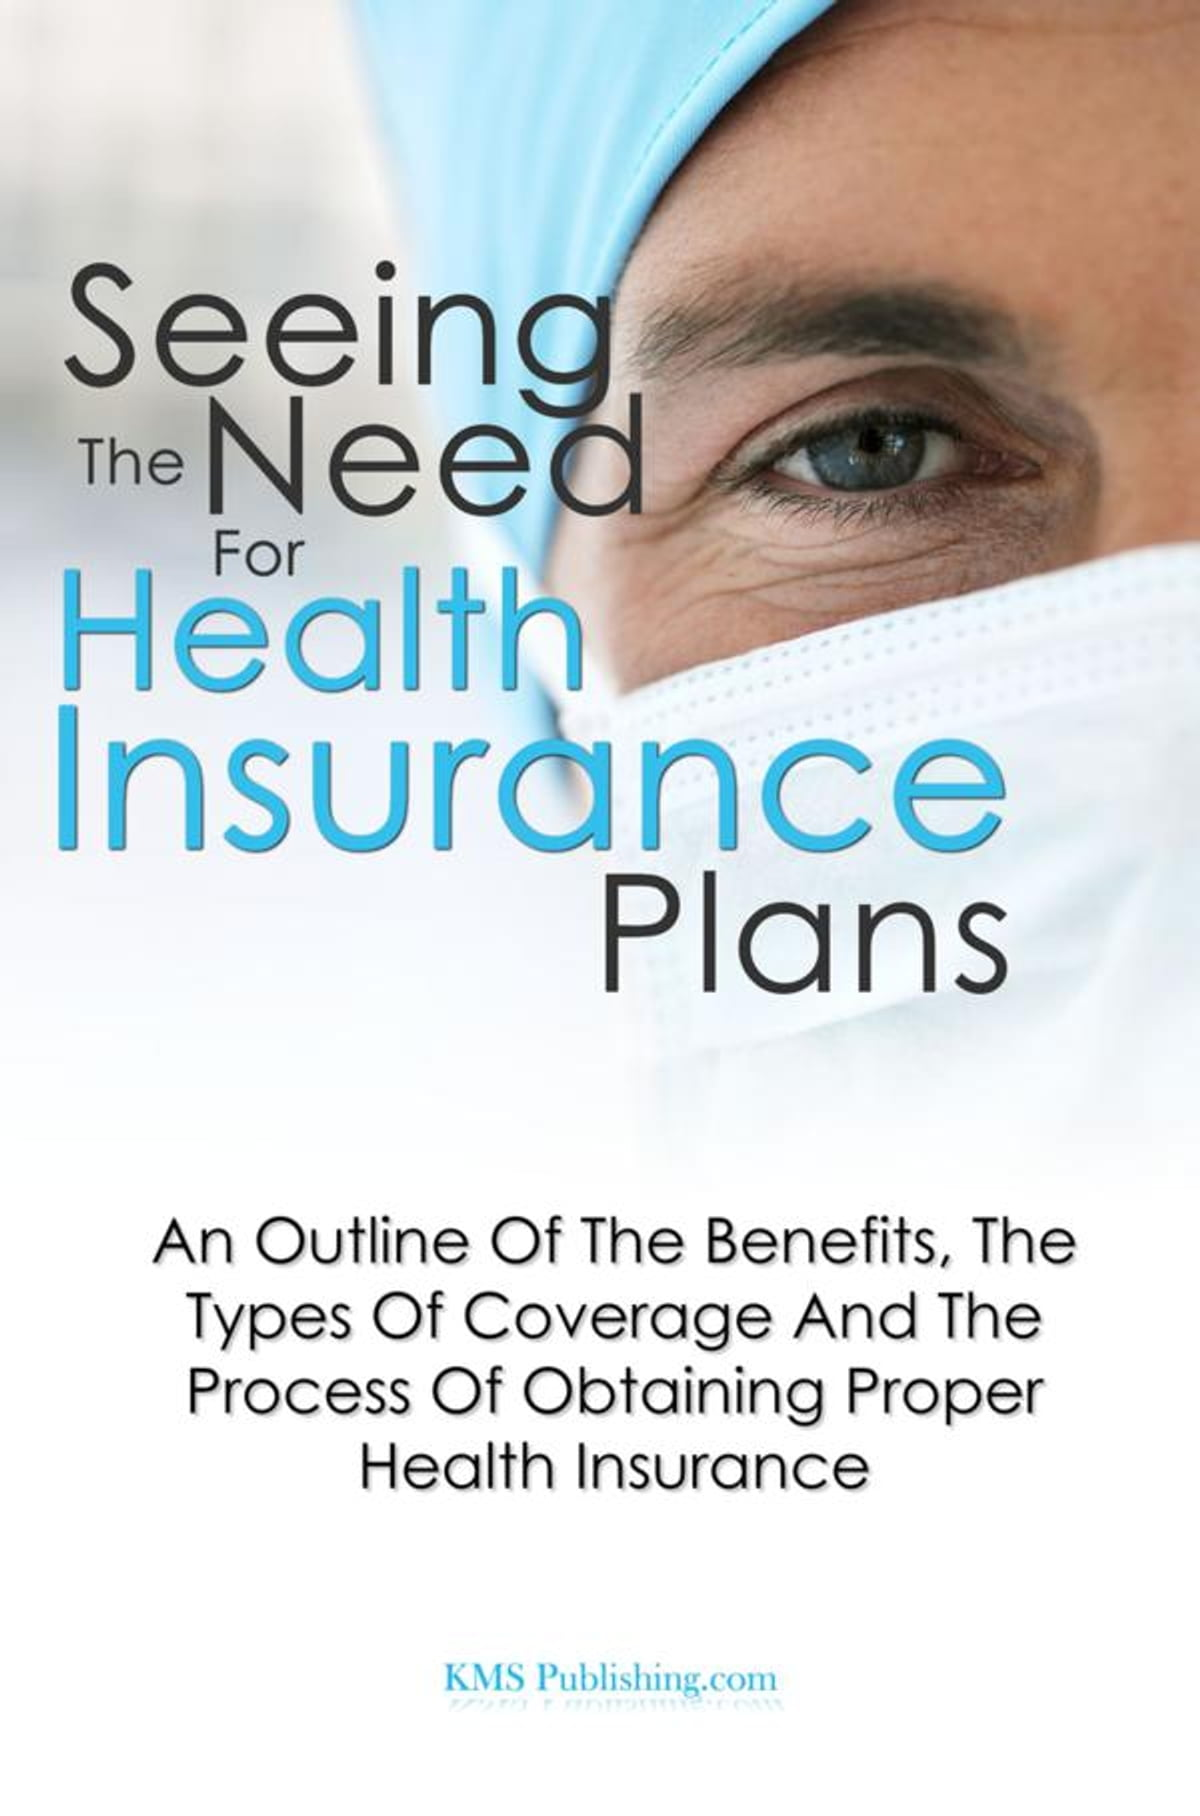 Health Insurance Plans >> Seeing The Need For Health Insurance Plans E Kitap Kms Publishing